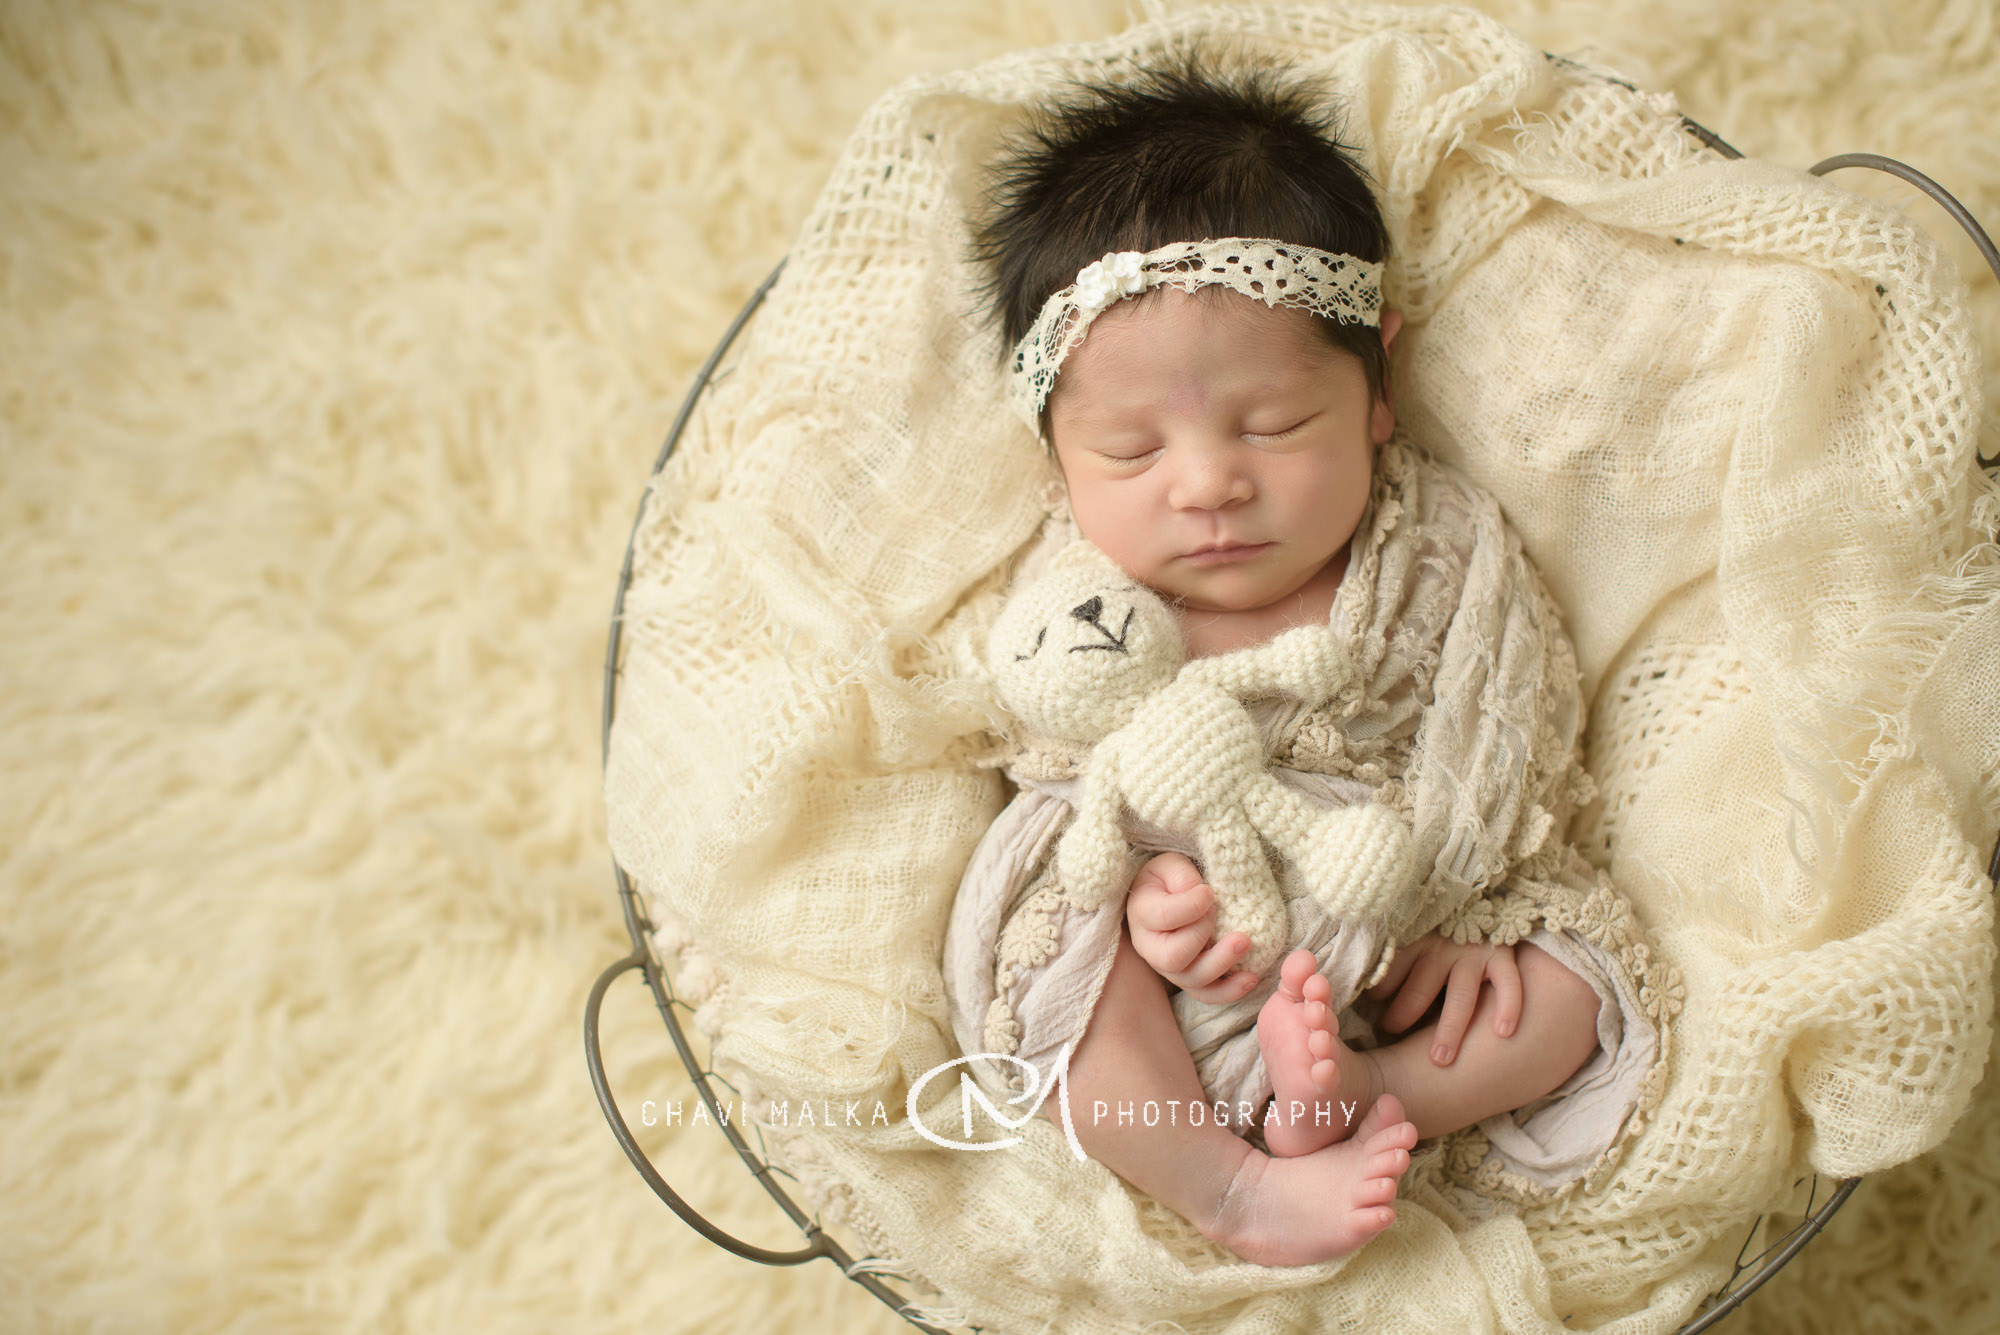 Awesome Newborn Hair! Long Island – NYC – Professional Newborn Photographer